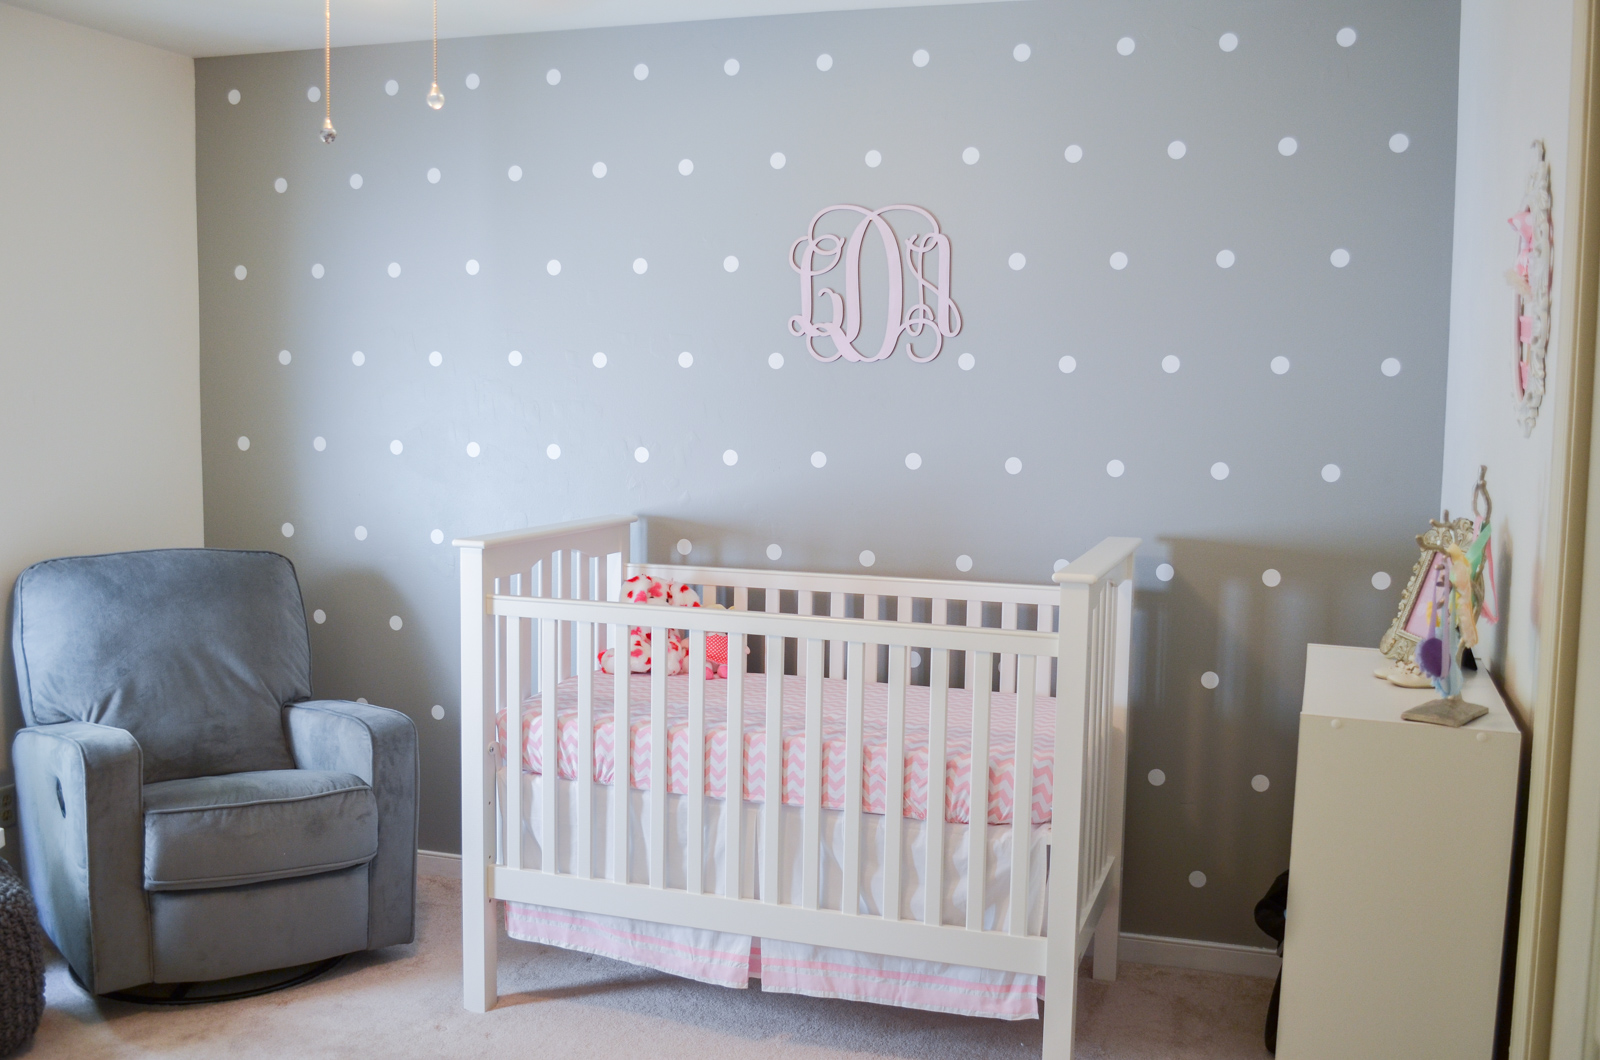 polka dot nursery wall - polka dot accent wall instuctions | bylaurenm.com